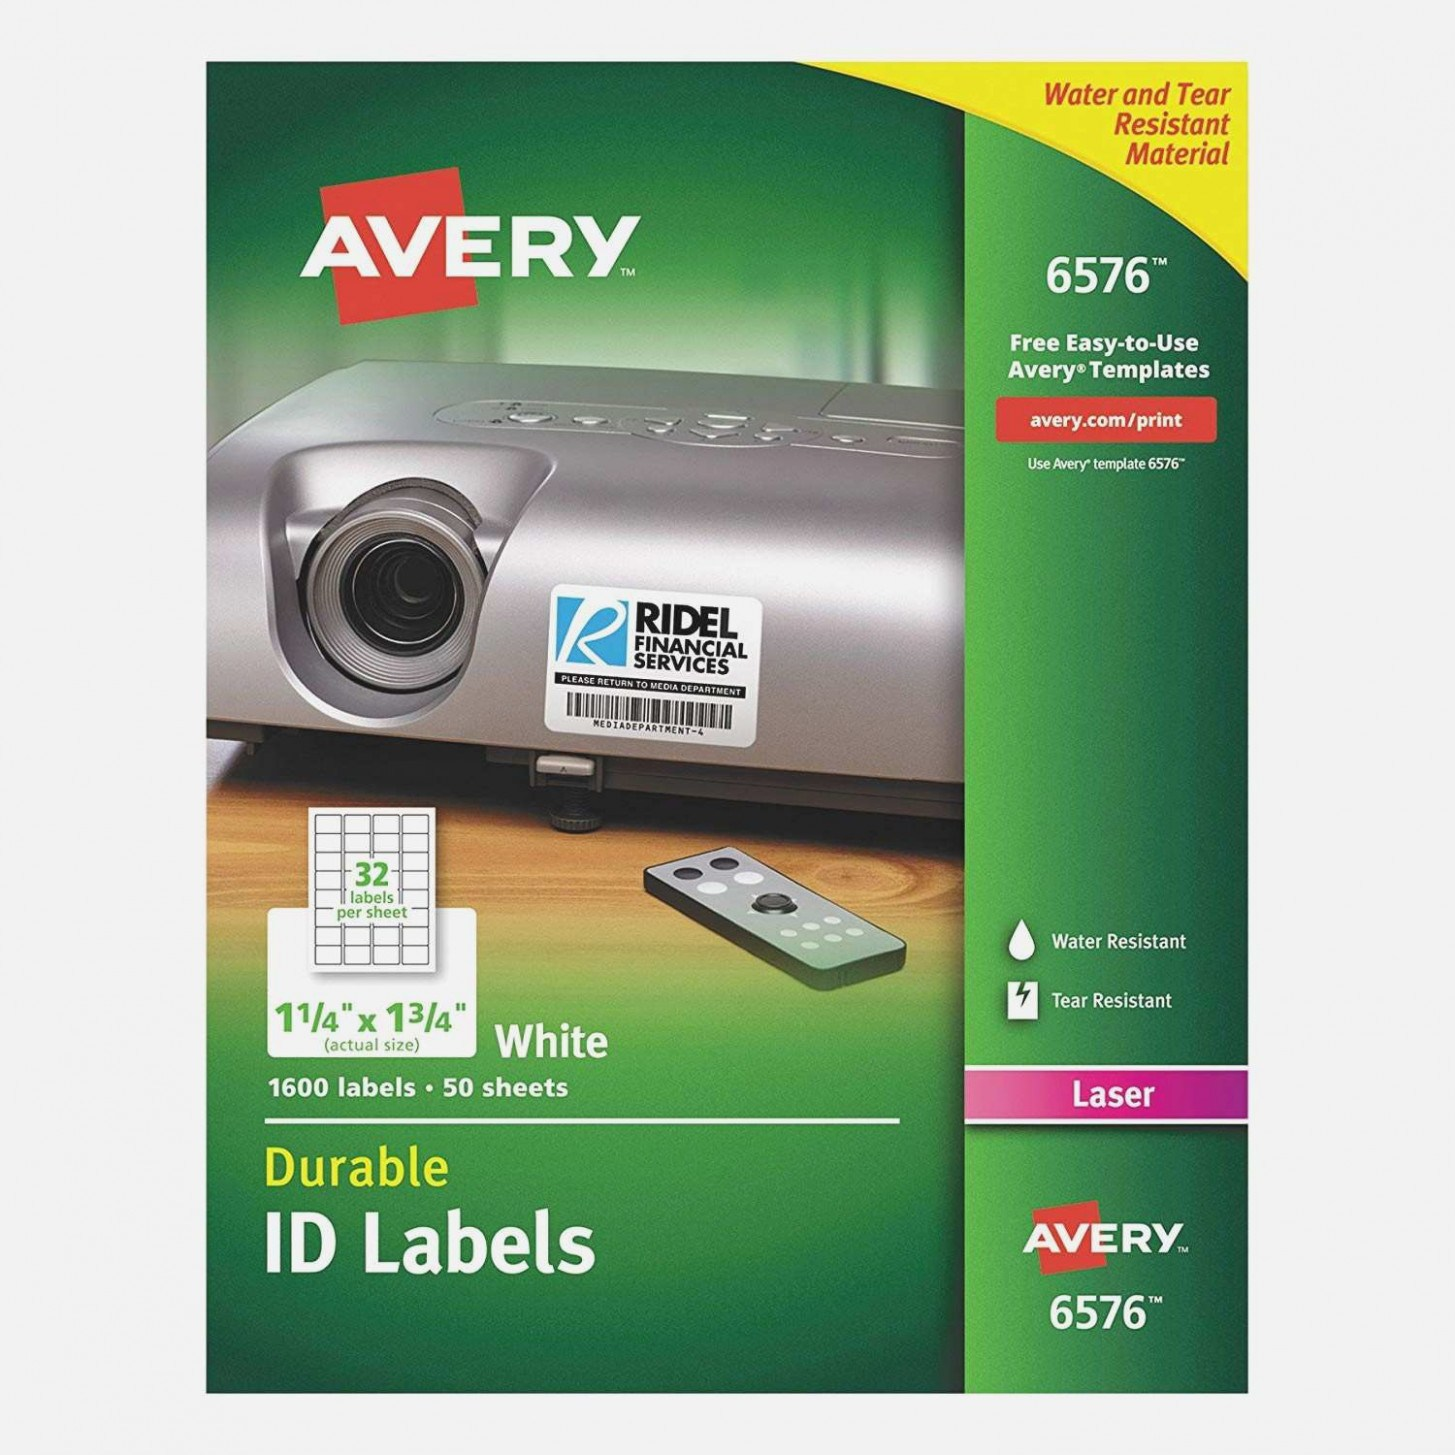 Free Avery Label Templates 8160